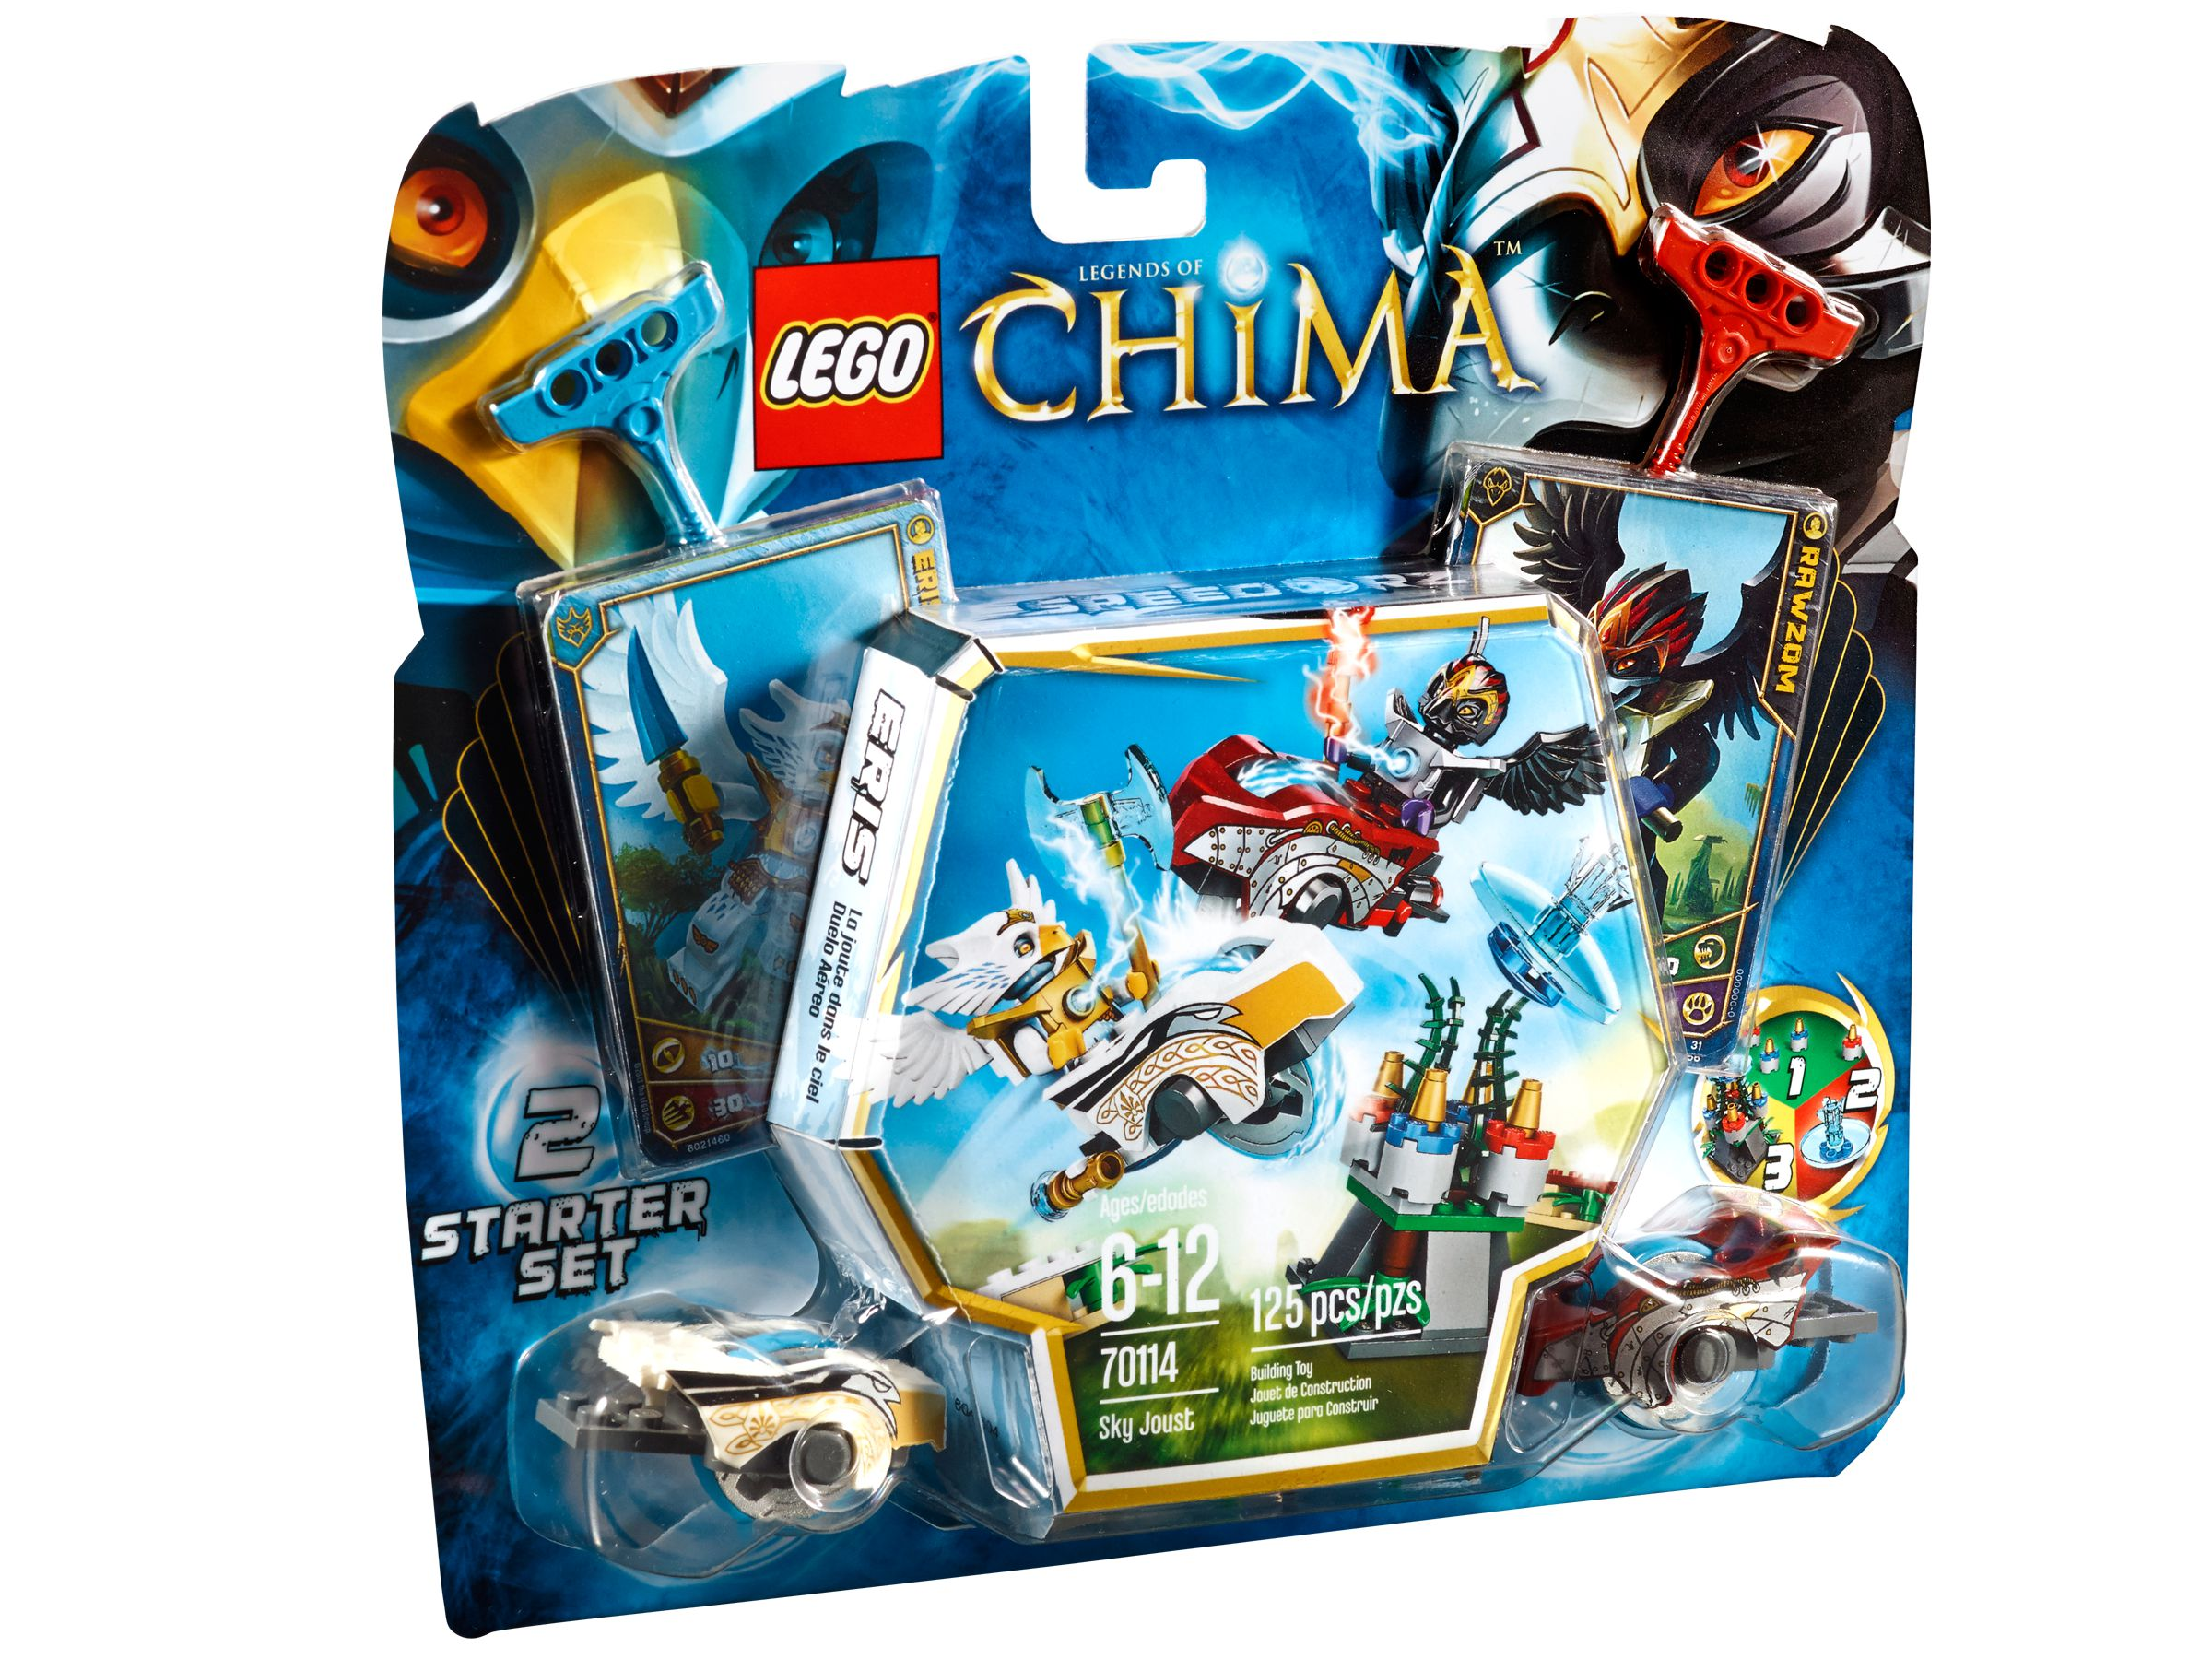 "LEGO Legends Of Chima 70114 Action-Set ""Himmelsduell"" LEGO_70114_alt1.jpg"